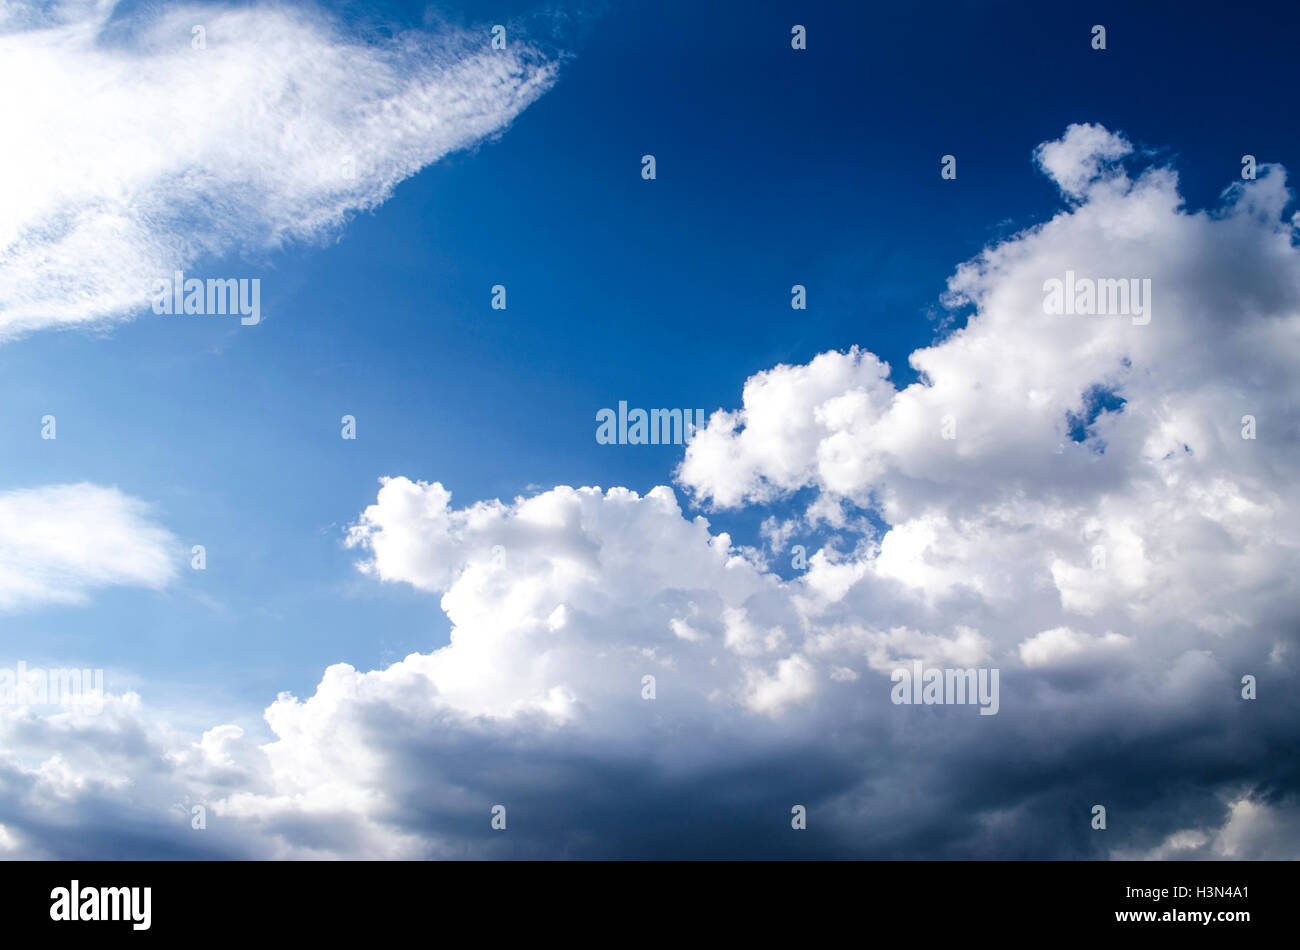 Dark rainy clouds covering the sunny calm sky - Stock Image